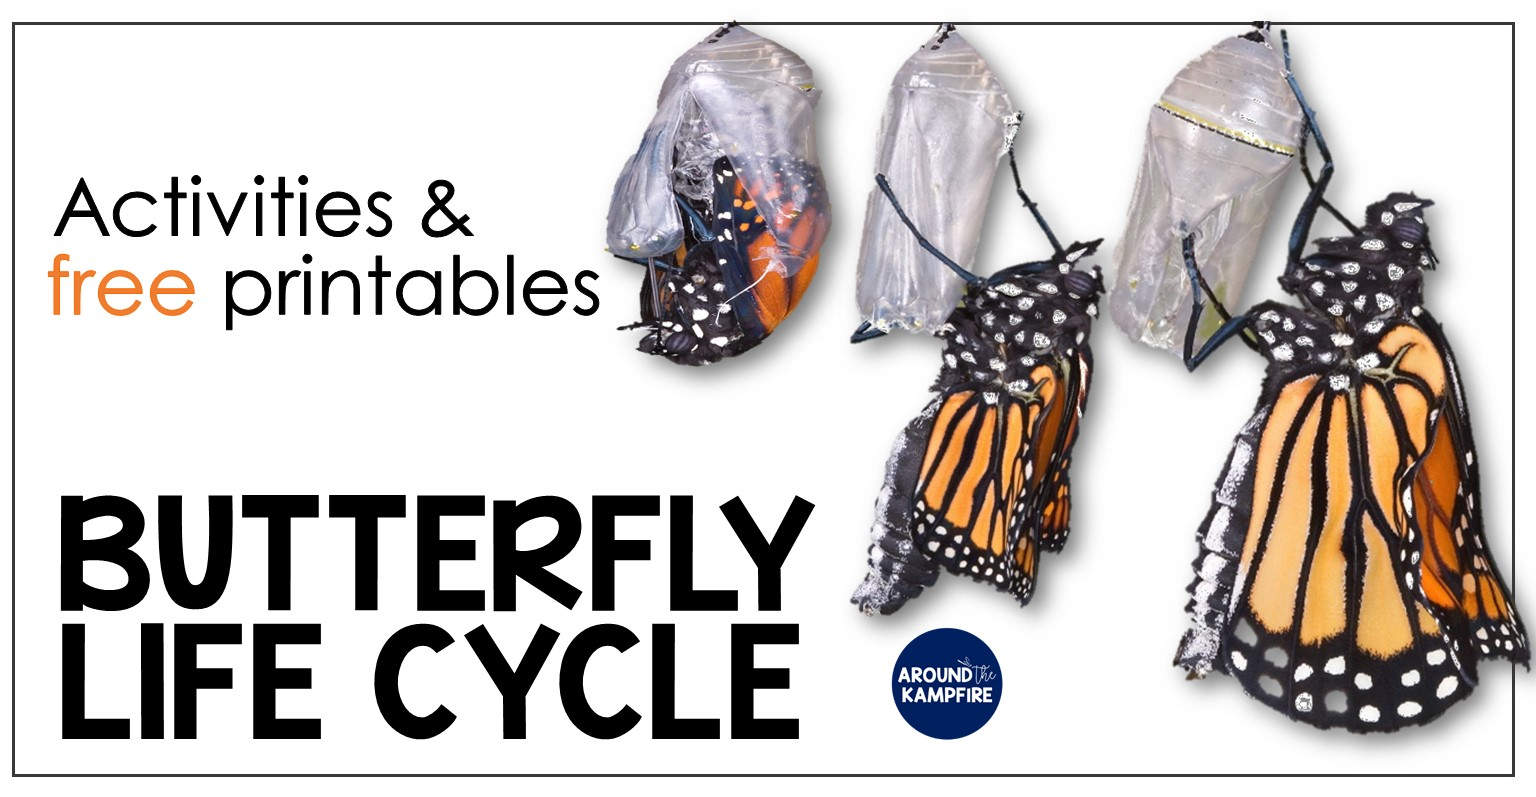 hight resolution of Butterfly Life Cycle Resources \u0026 Free Printables - Around the Kampfire